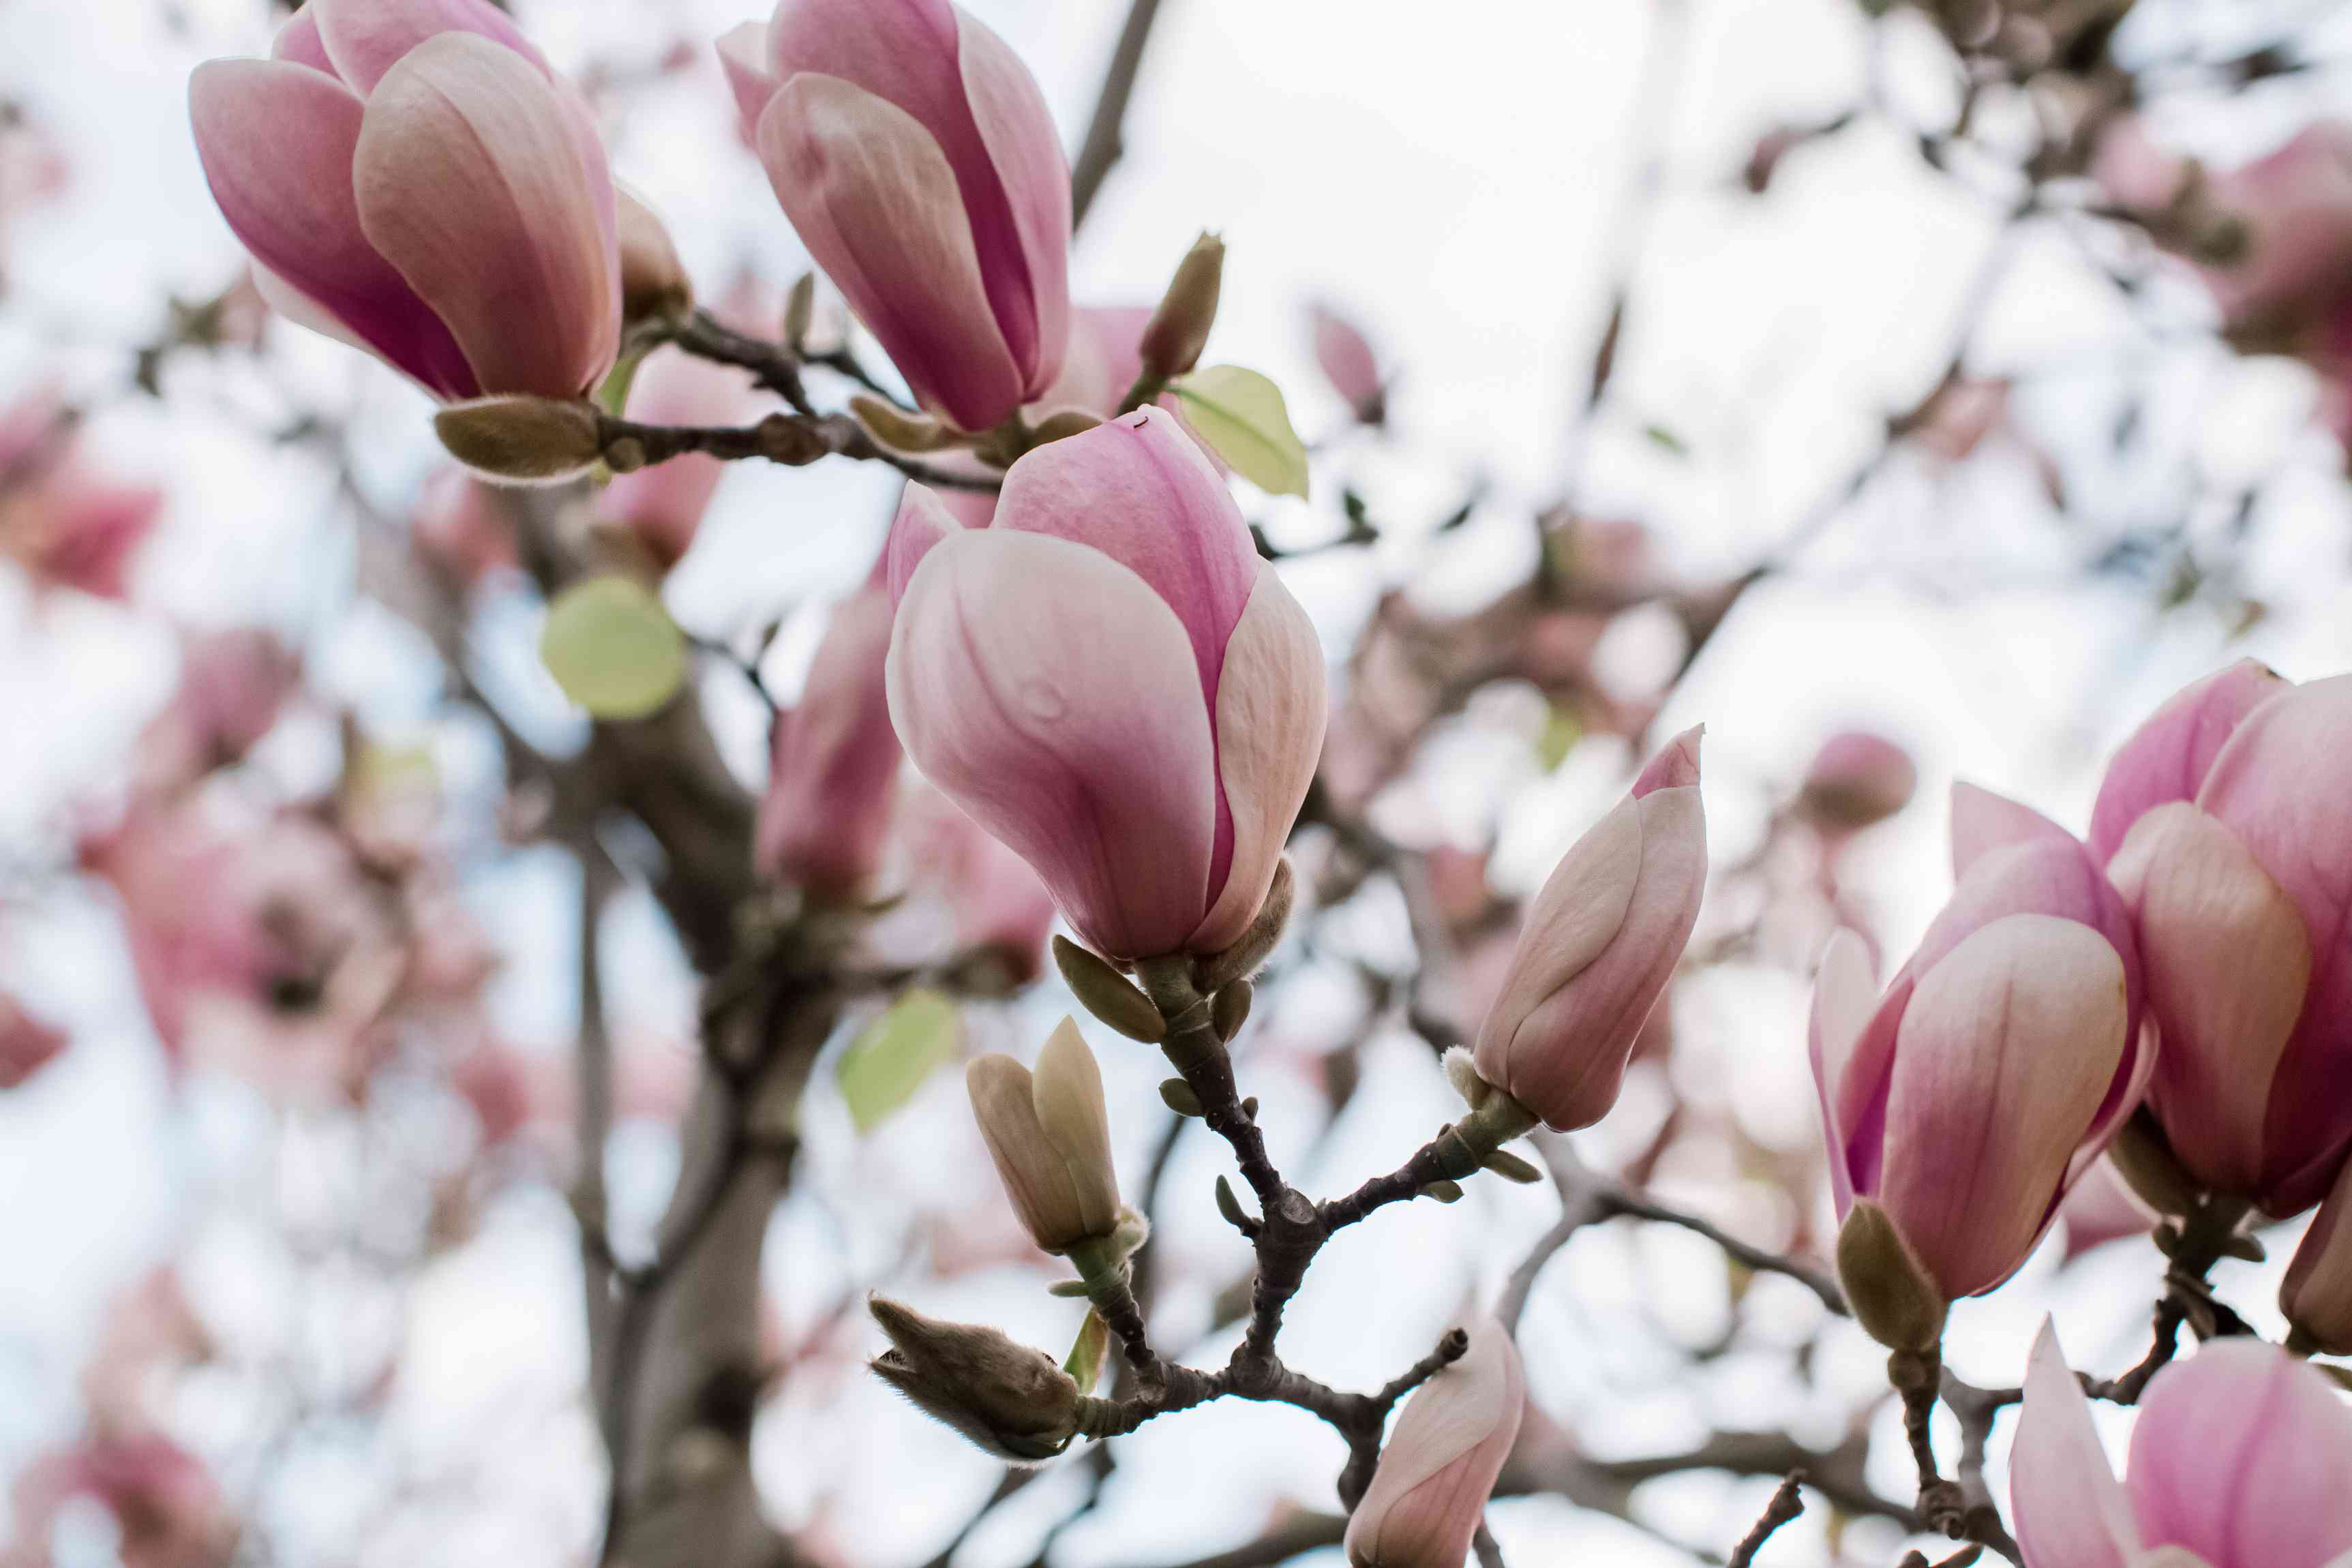 magnolia blossoms that haven't fully opened